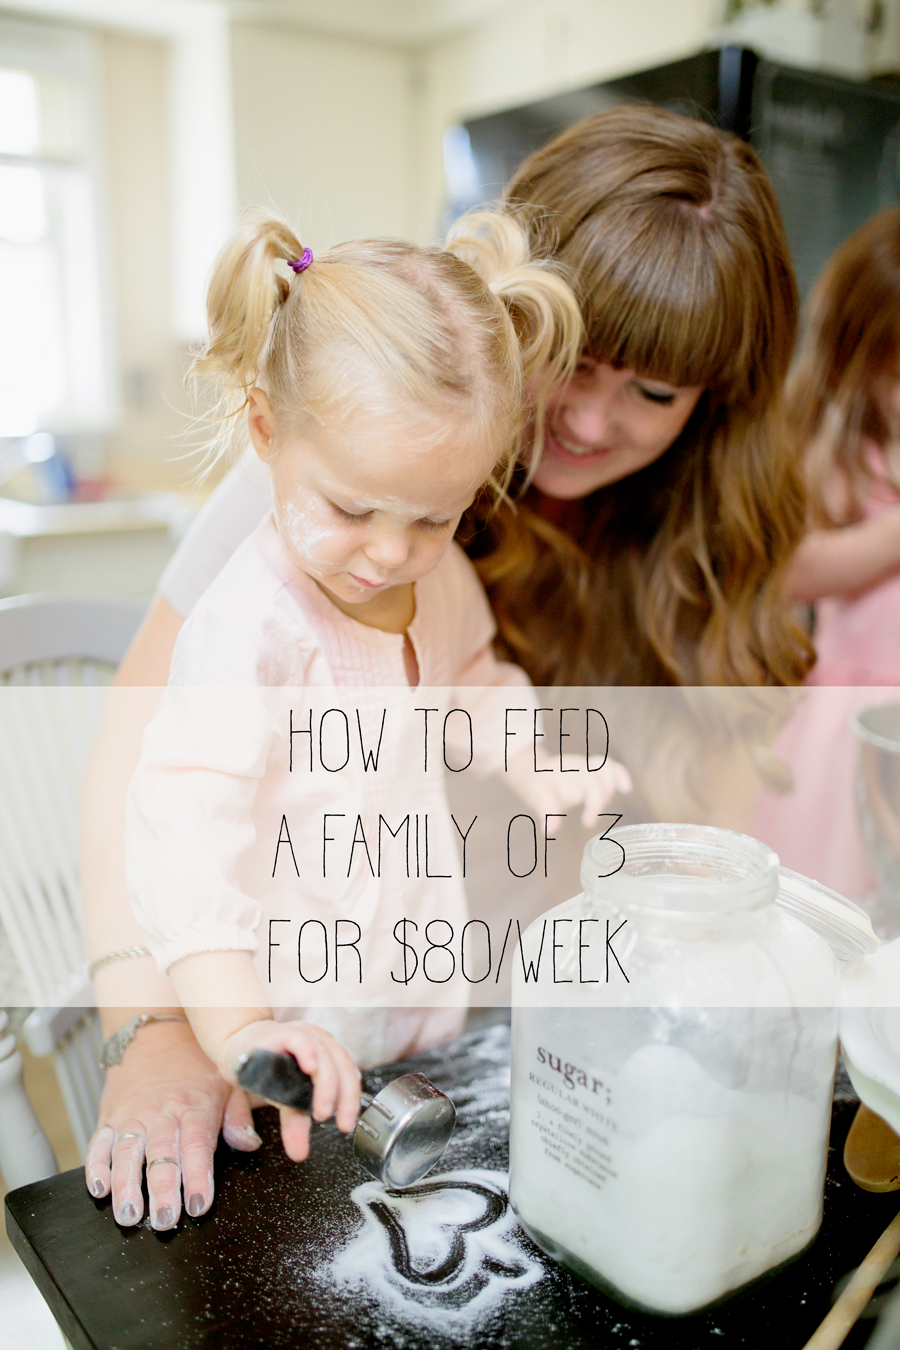 how-to-feed-a-family-of-3-for-80